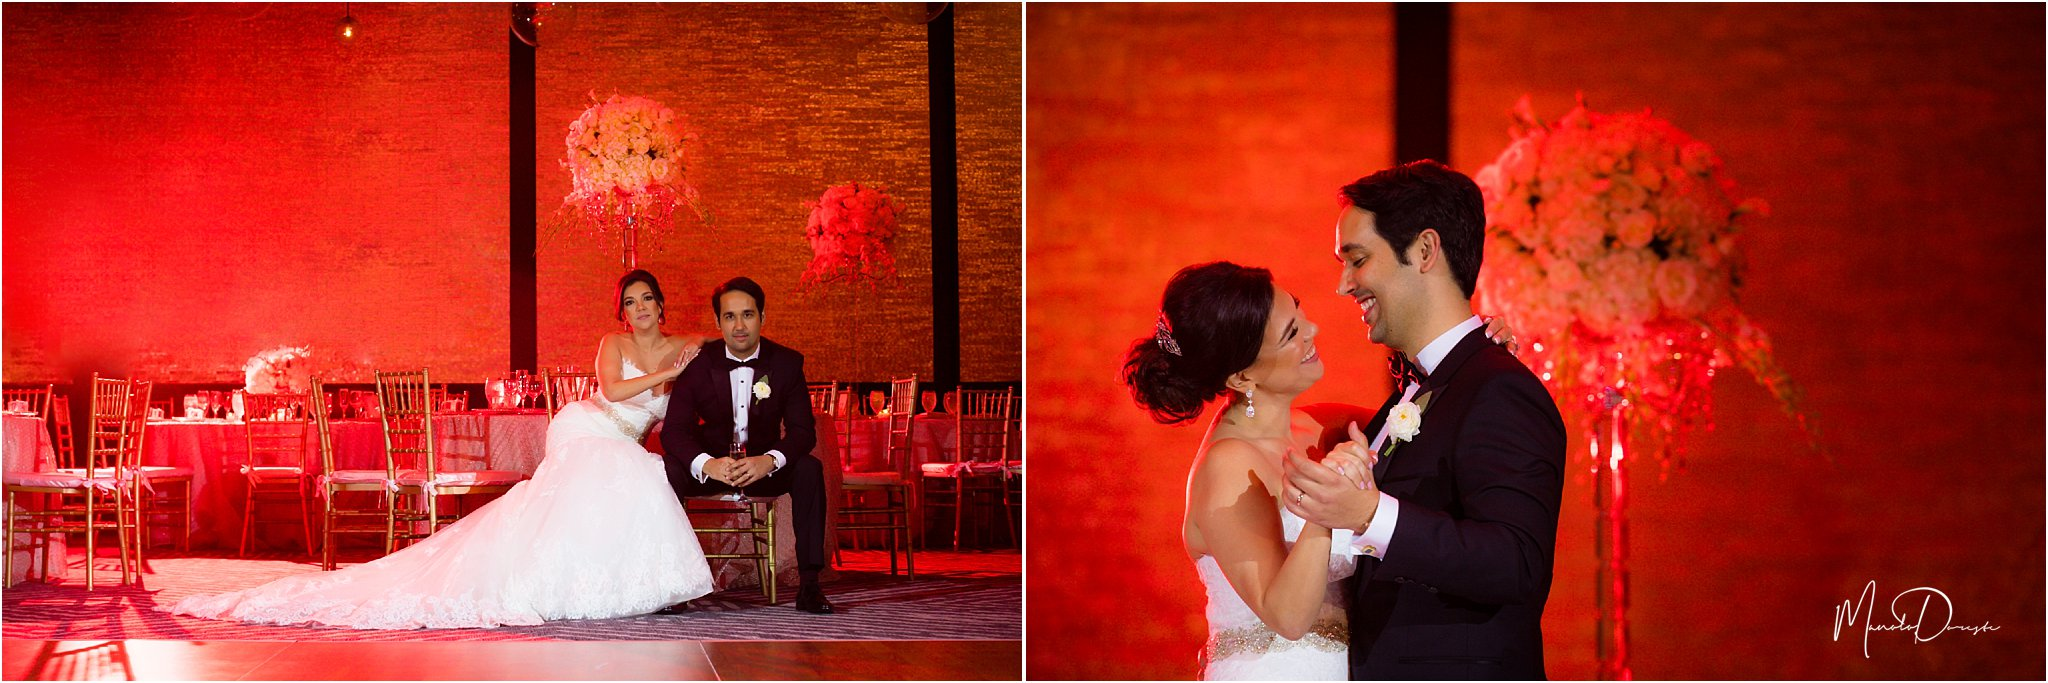 0095_ManoloDoreste_InFocusStudios_Wedding_Family_Photography_Miami_MiamiPhotographer.jpg